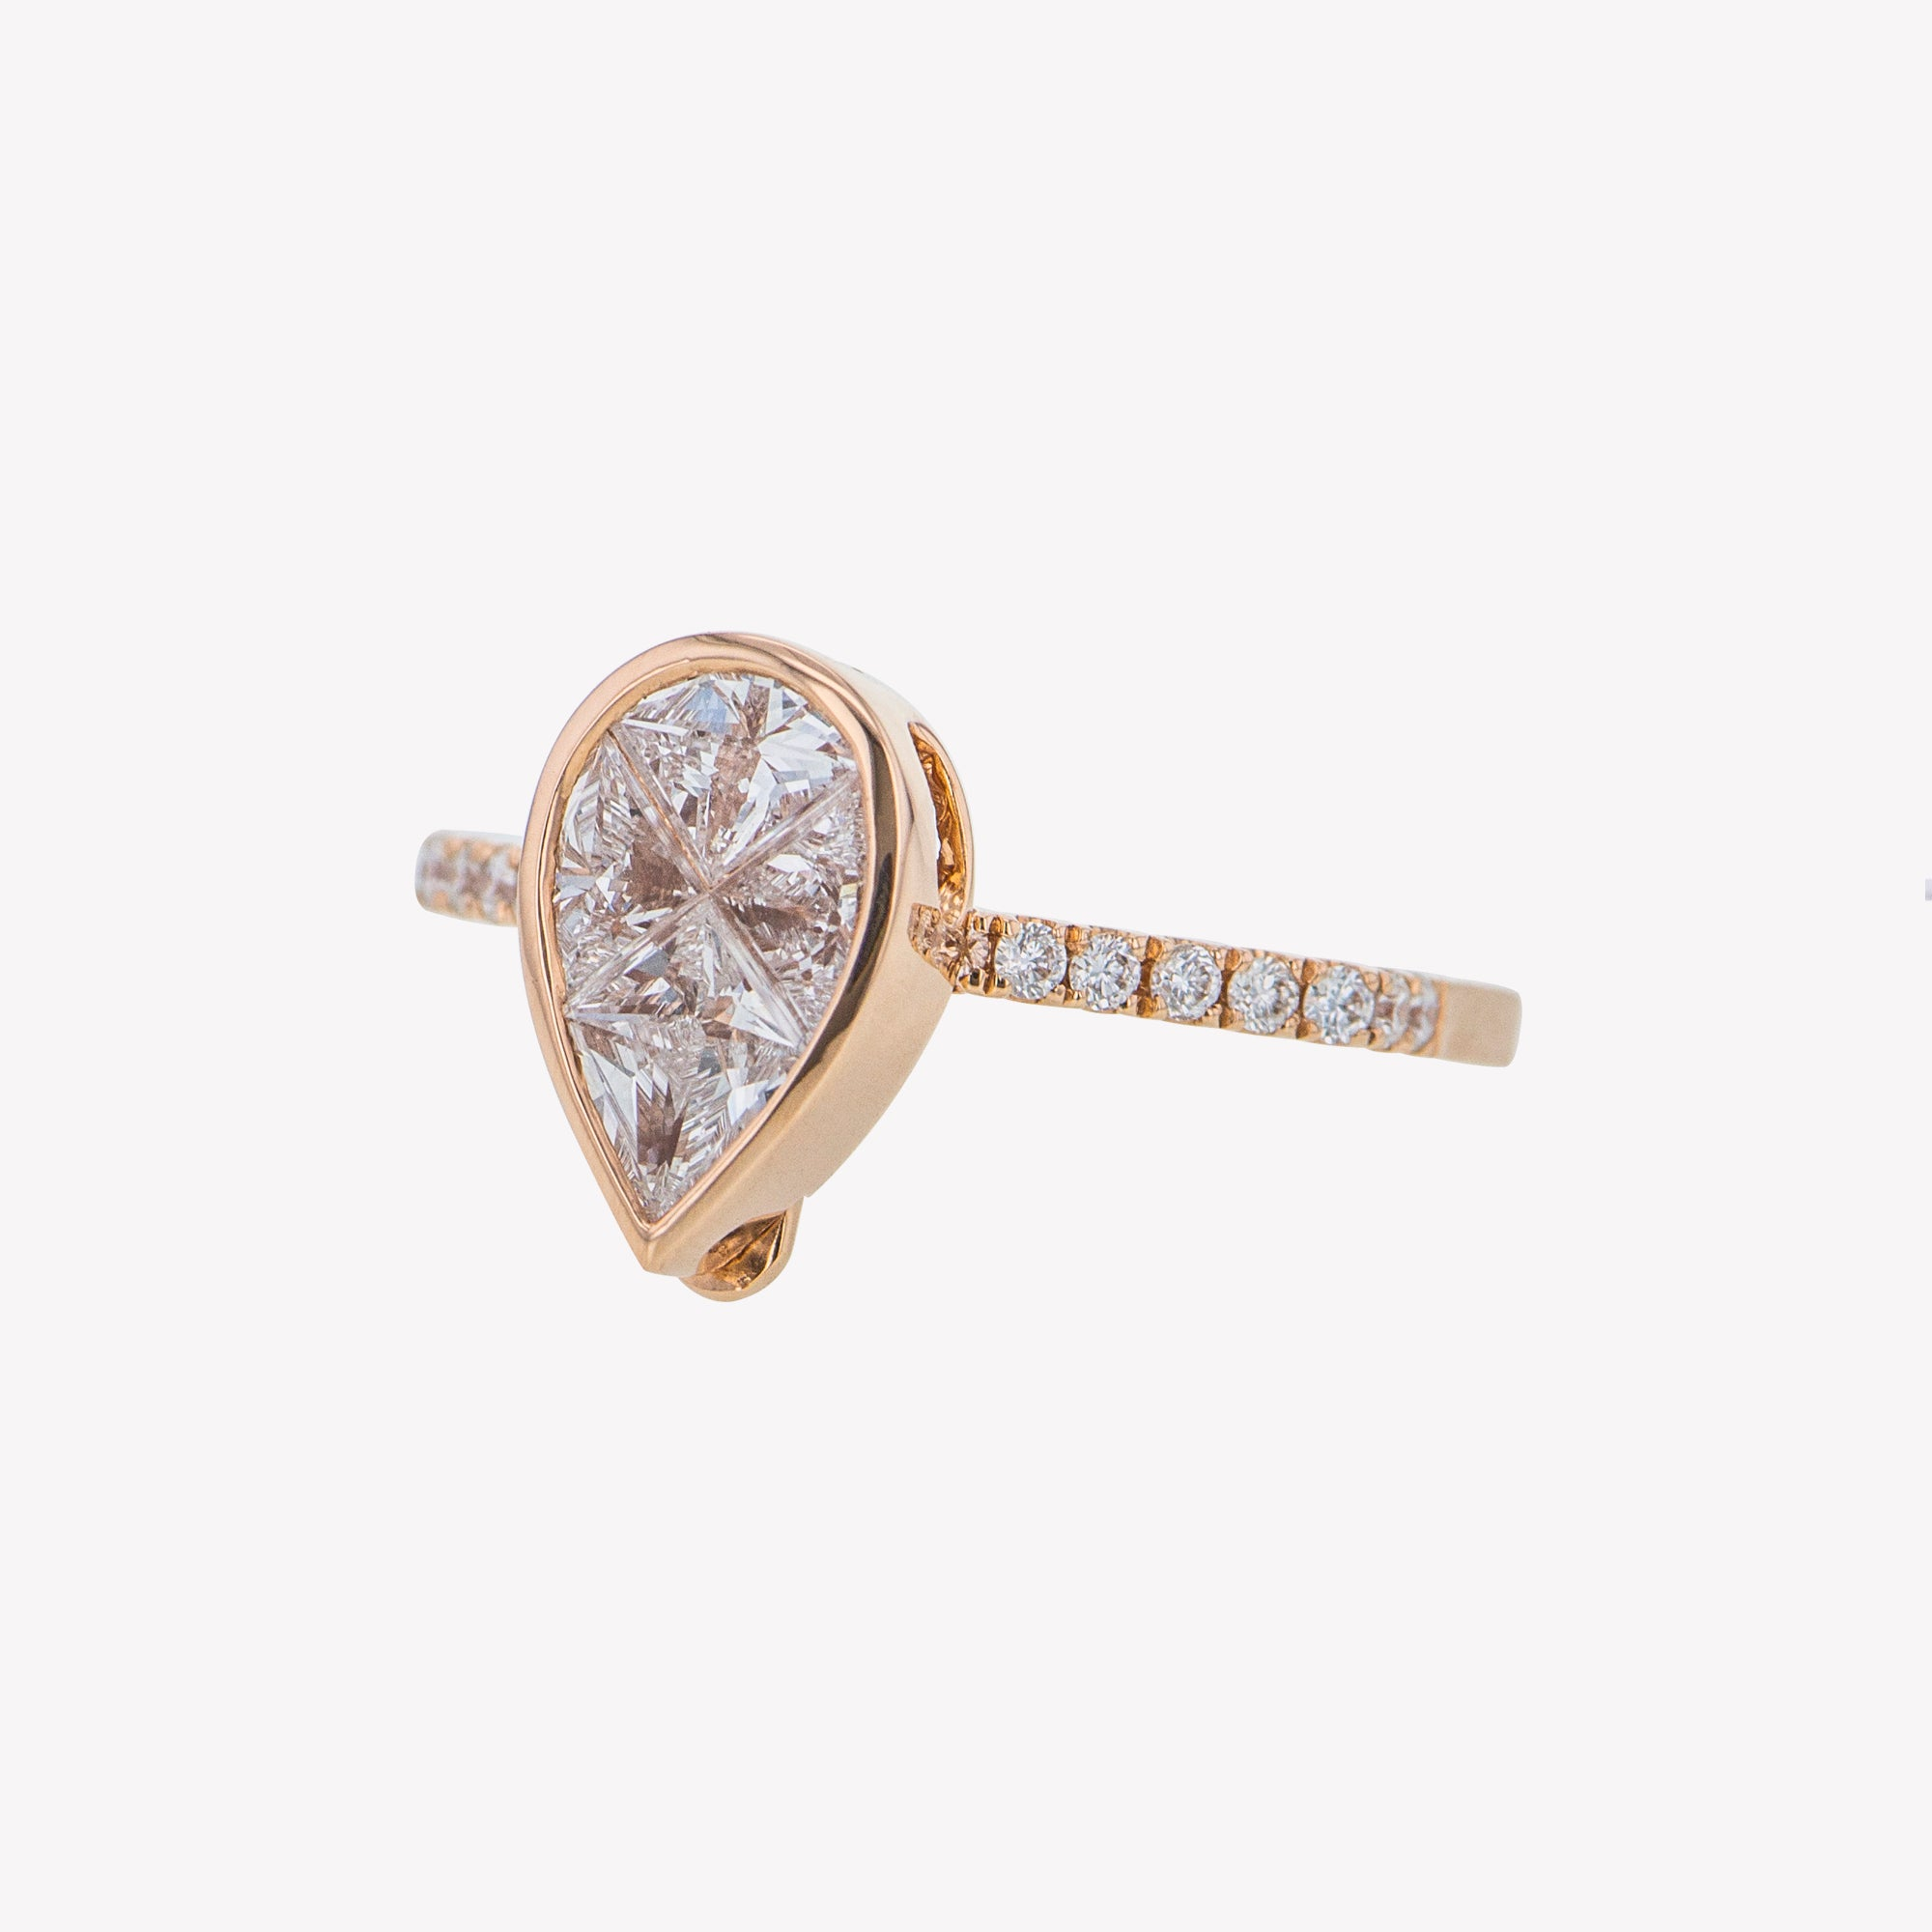 Detachable Rose Gold Pear Head with Octa Diamond Band